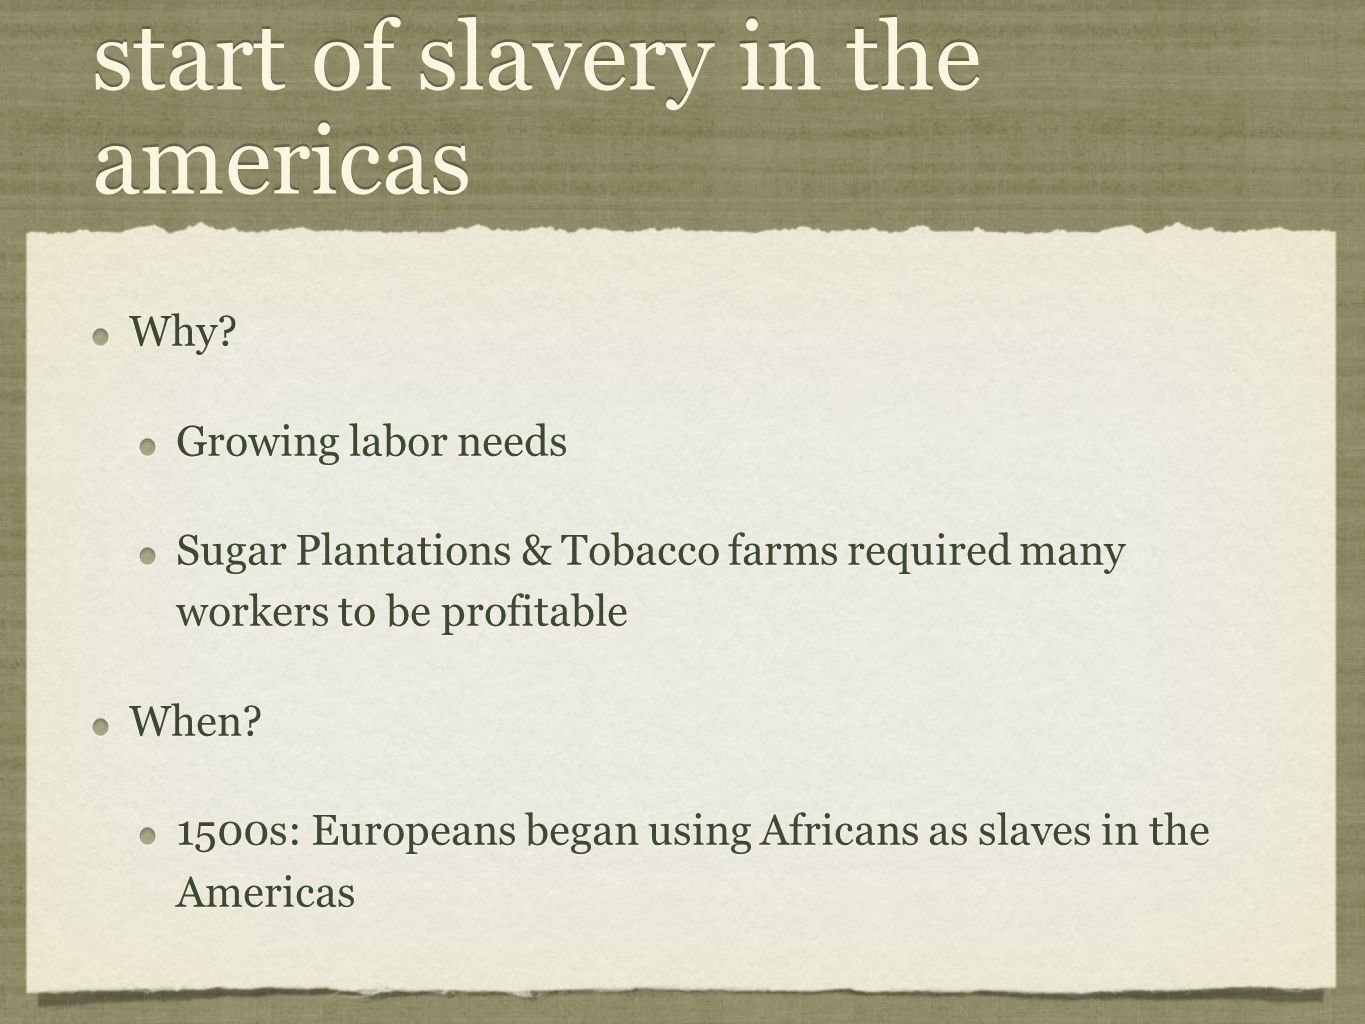 start of slavery in the americas Why? Growing labor needs Sugar Plantations & Tobacco farms required many workers to be profitable When? 1500s: Europe